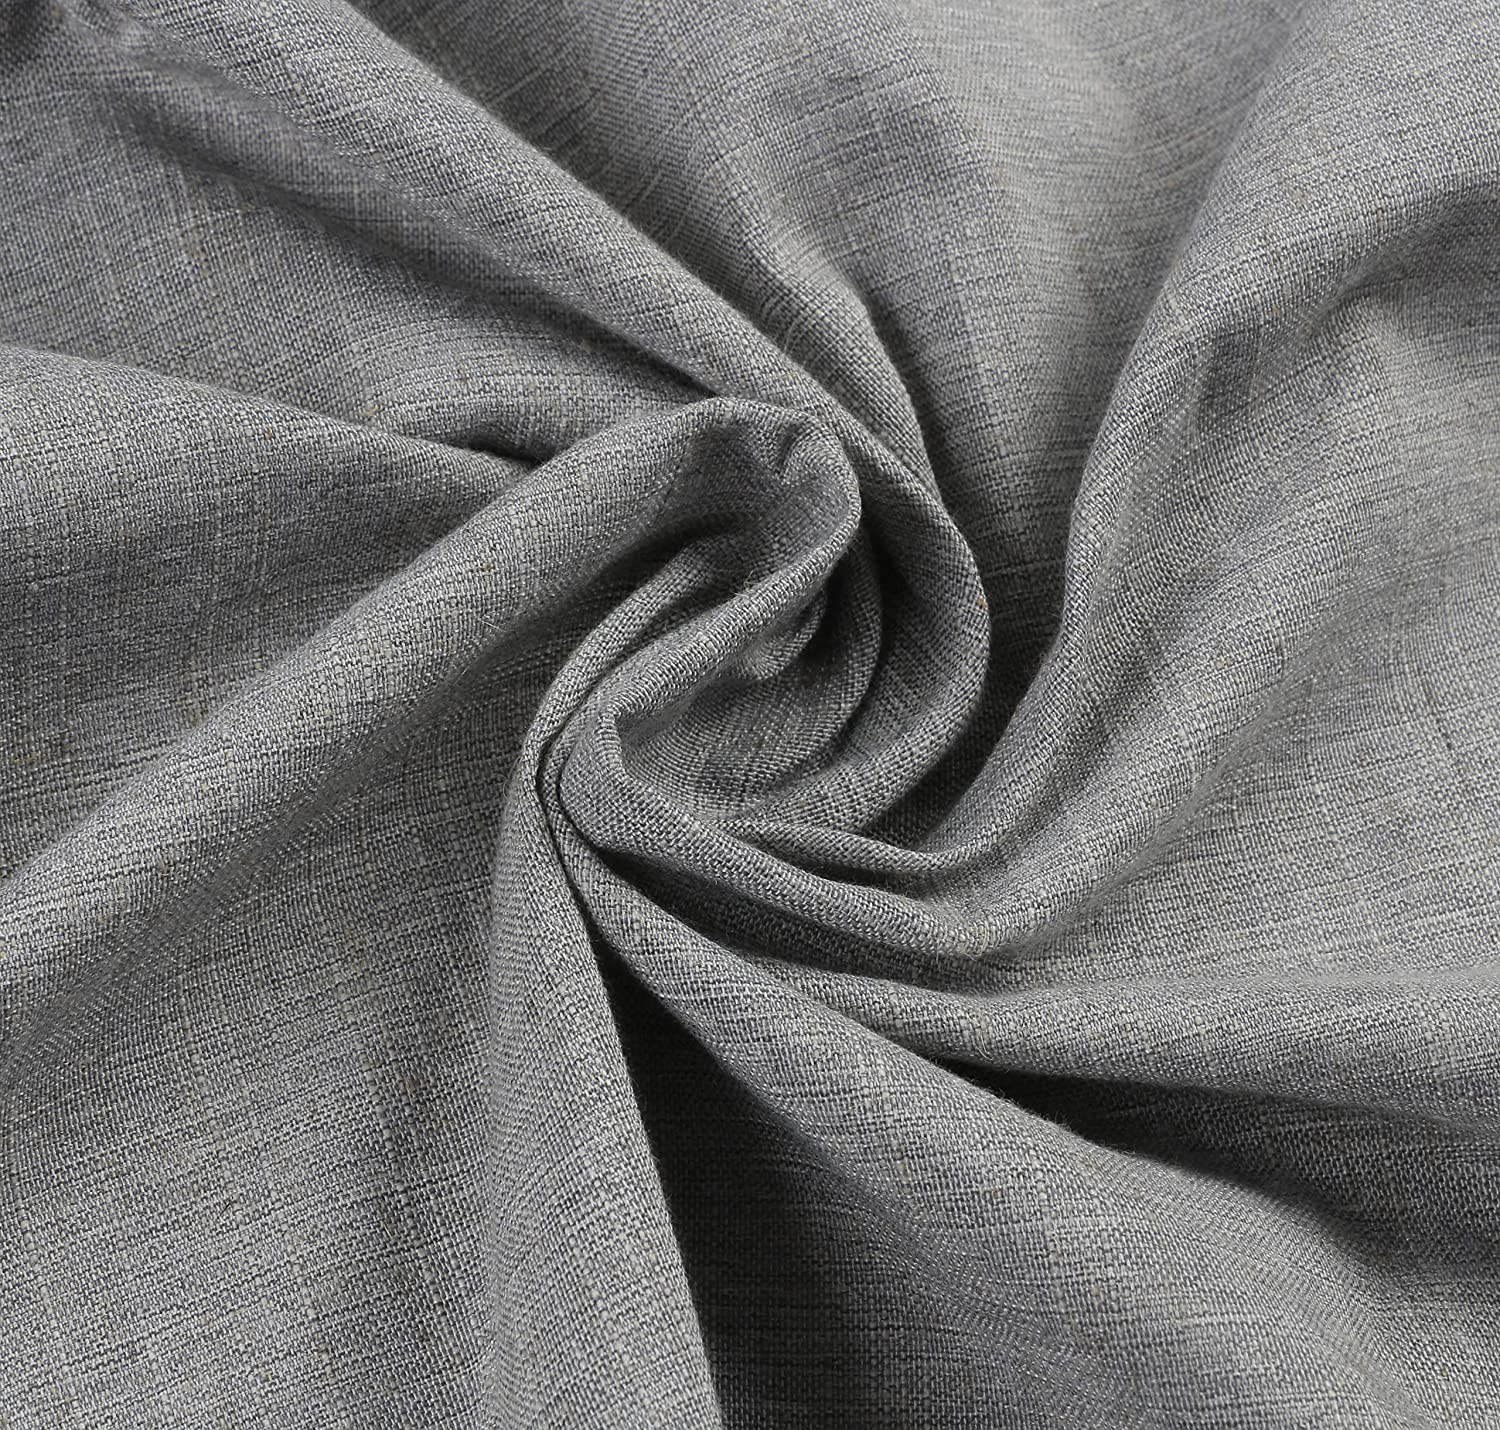 Homcomodar Grey Round Table Cloth in Cotton and Linen for Dining Table 150cm Diameter Washable Table Cover